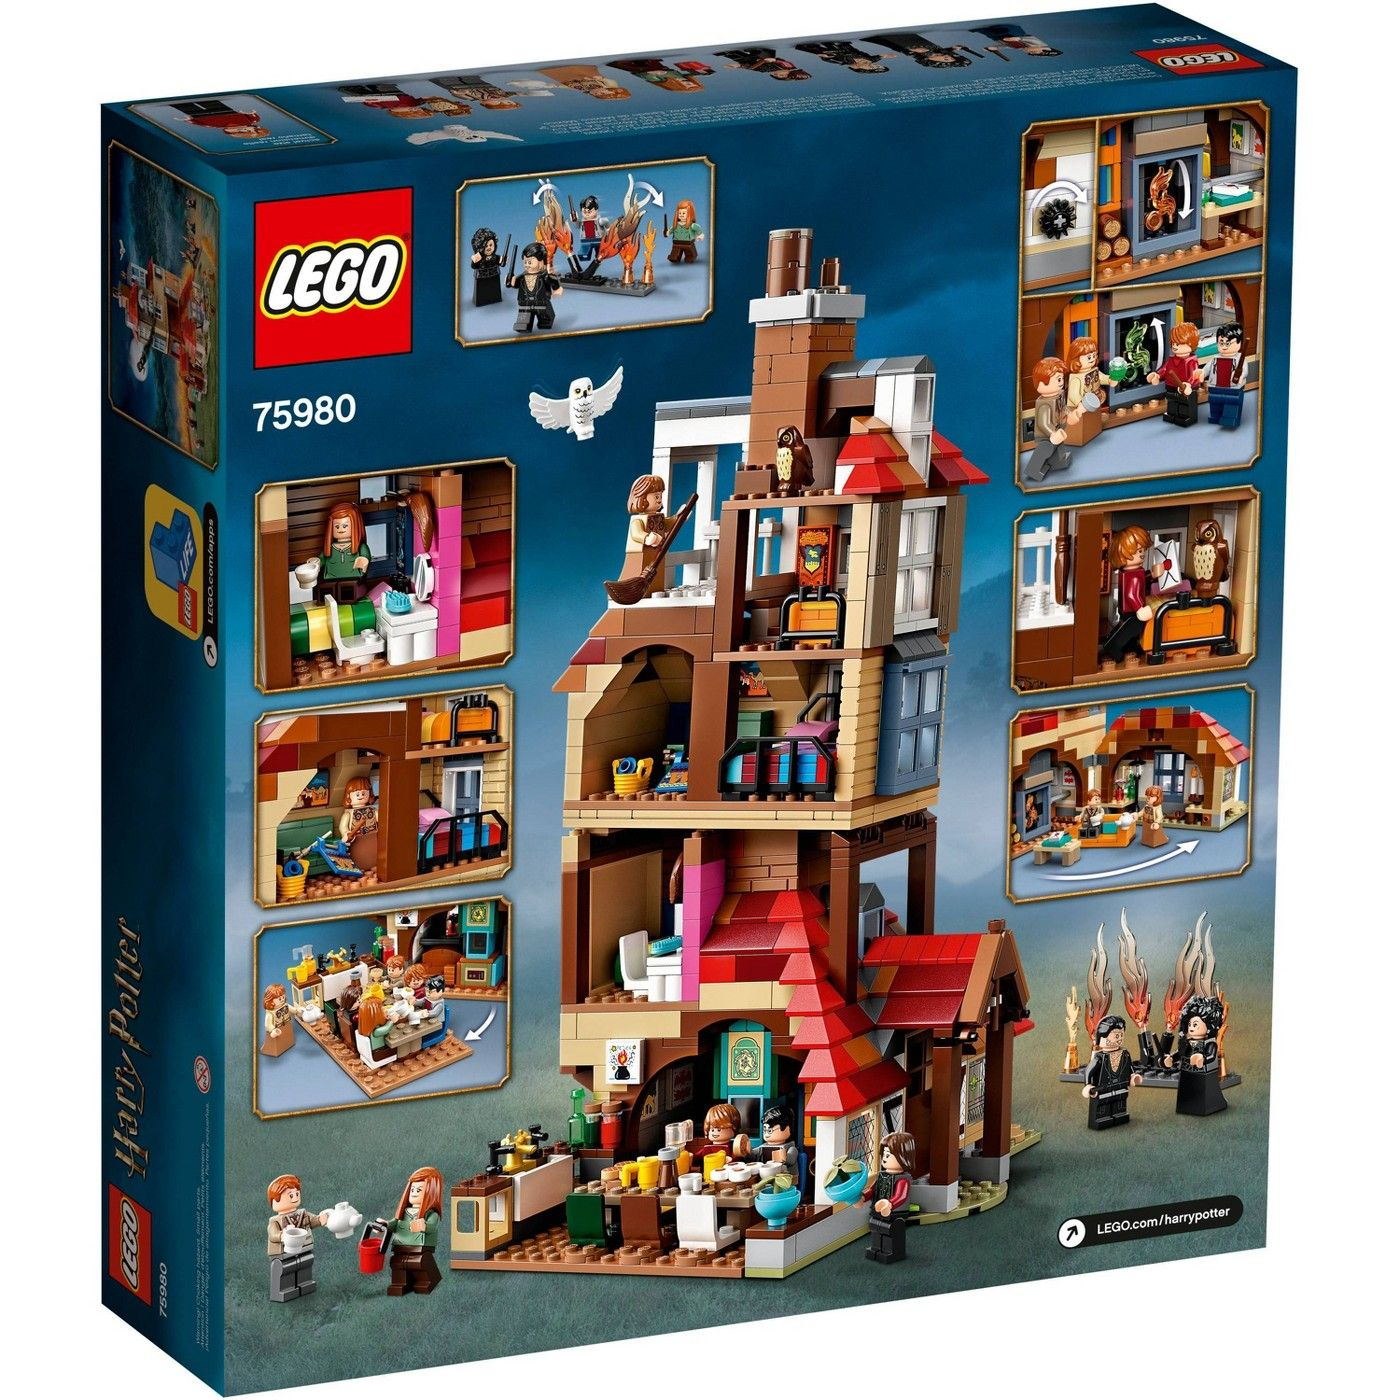 Lego Harry Potter Attack On The Burrow Weasley S Family Dollhouse Building Toy For Kids 75980 In 2021 Harry Potter Lego Sets Lego Harry Potter Harry Potter Toys